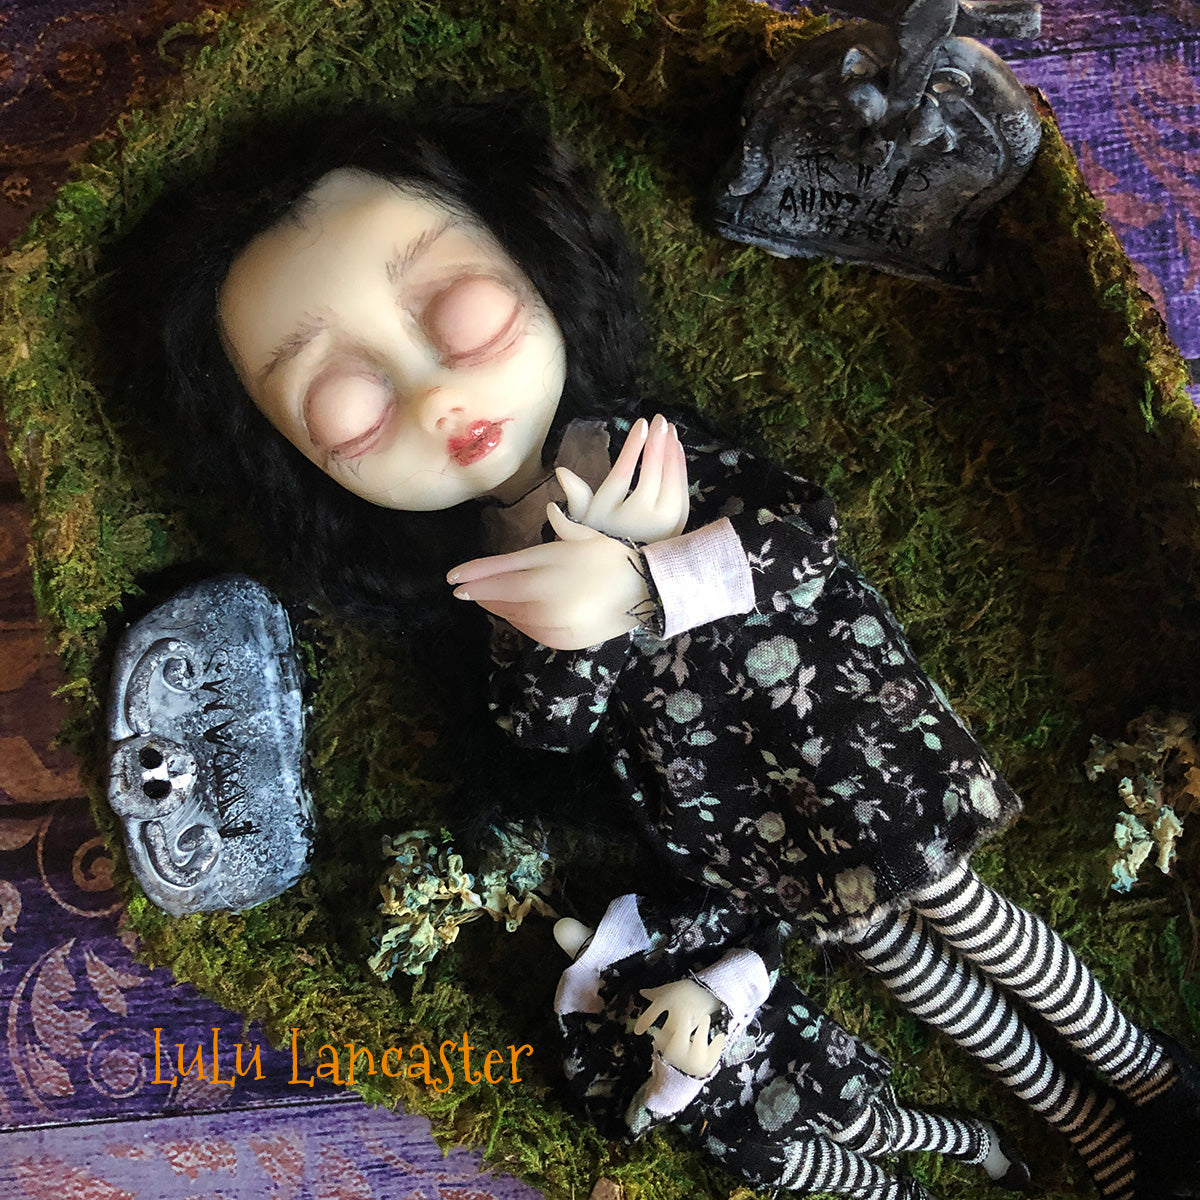 Mini Wednesday in graveyard sleeping kids OOAK Art Doll LuLu Lancaster